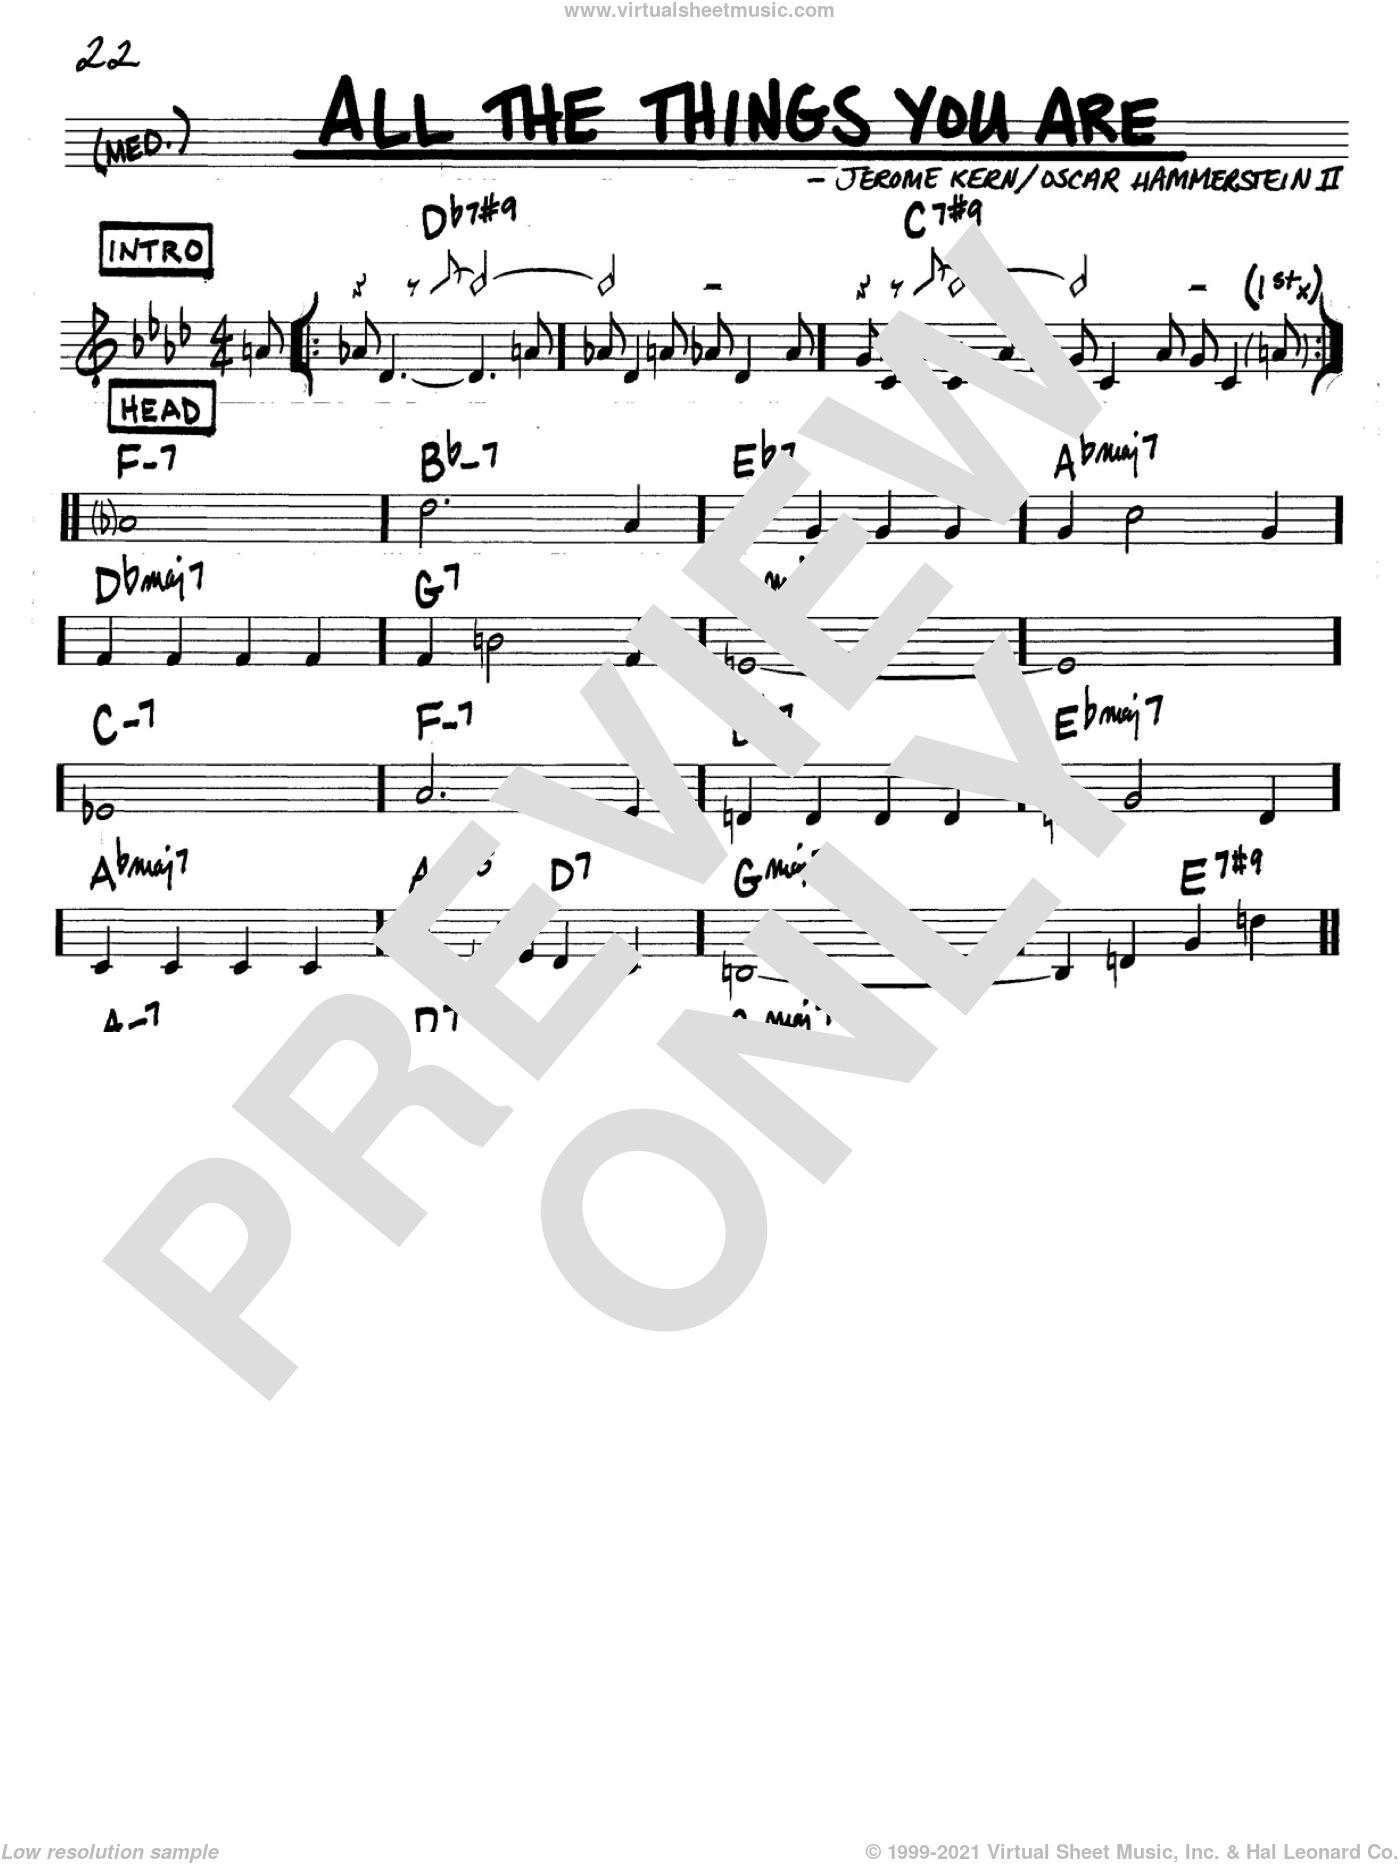 All The Things You Are sheet music for voice and other instruments (C) by Oscar II Hammerstein